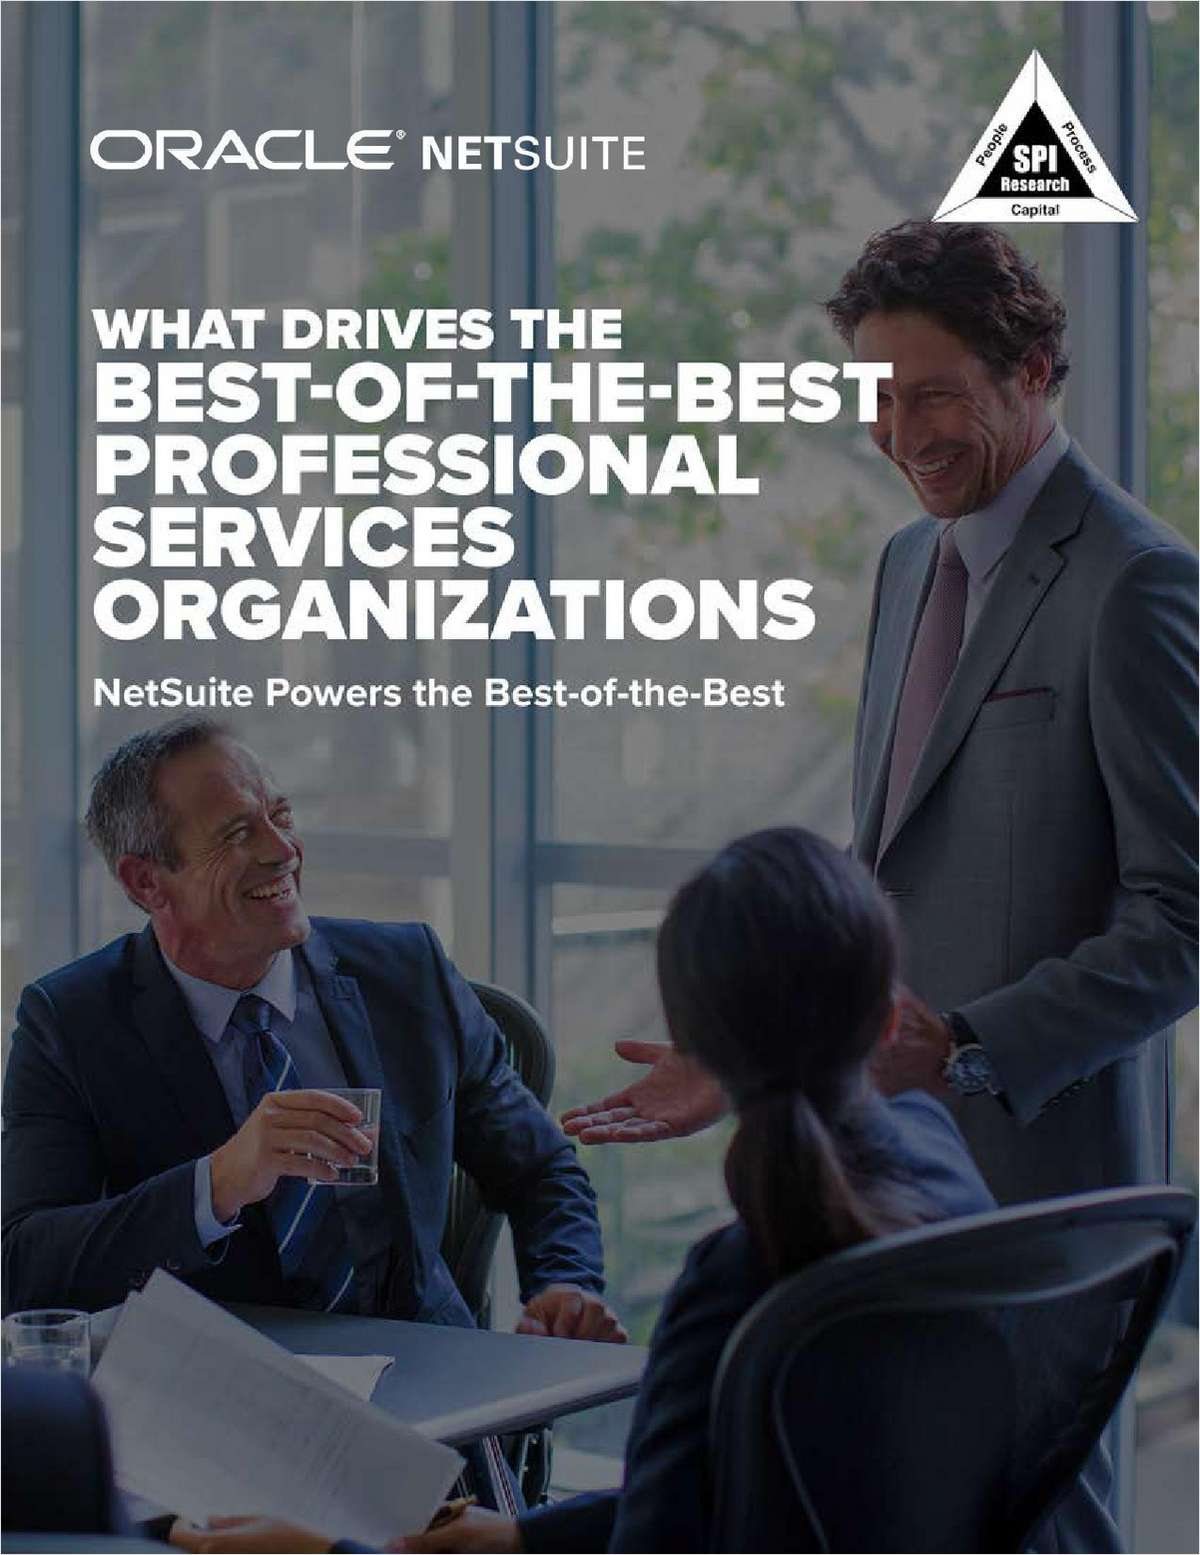 The Best-of-the-Best Professional Services Organizations